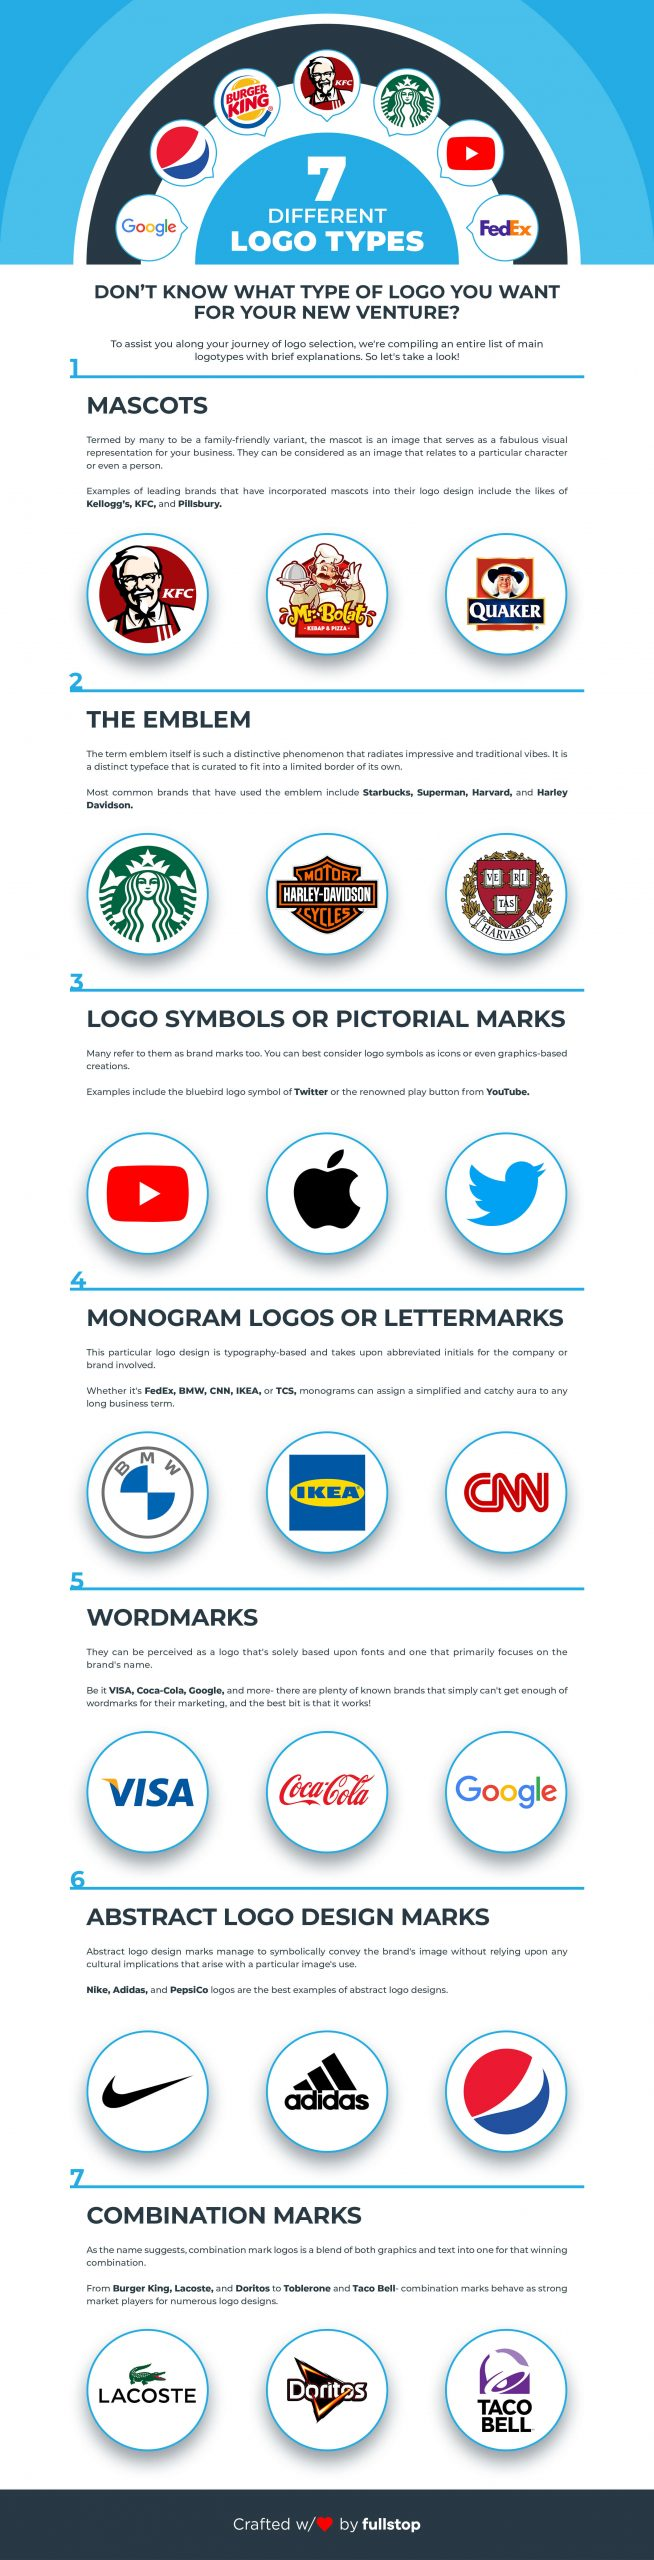 7 Different Logo Types - Infographic